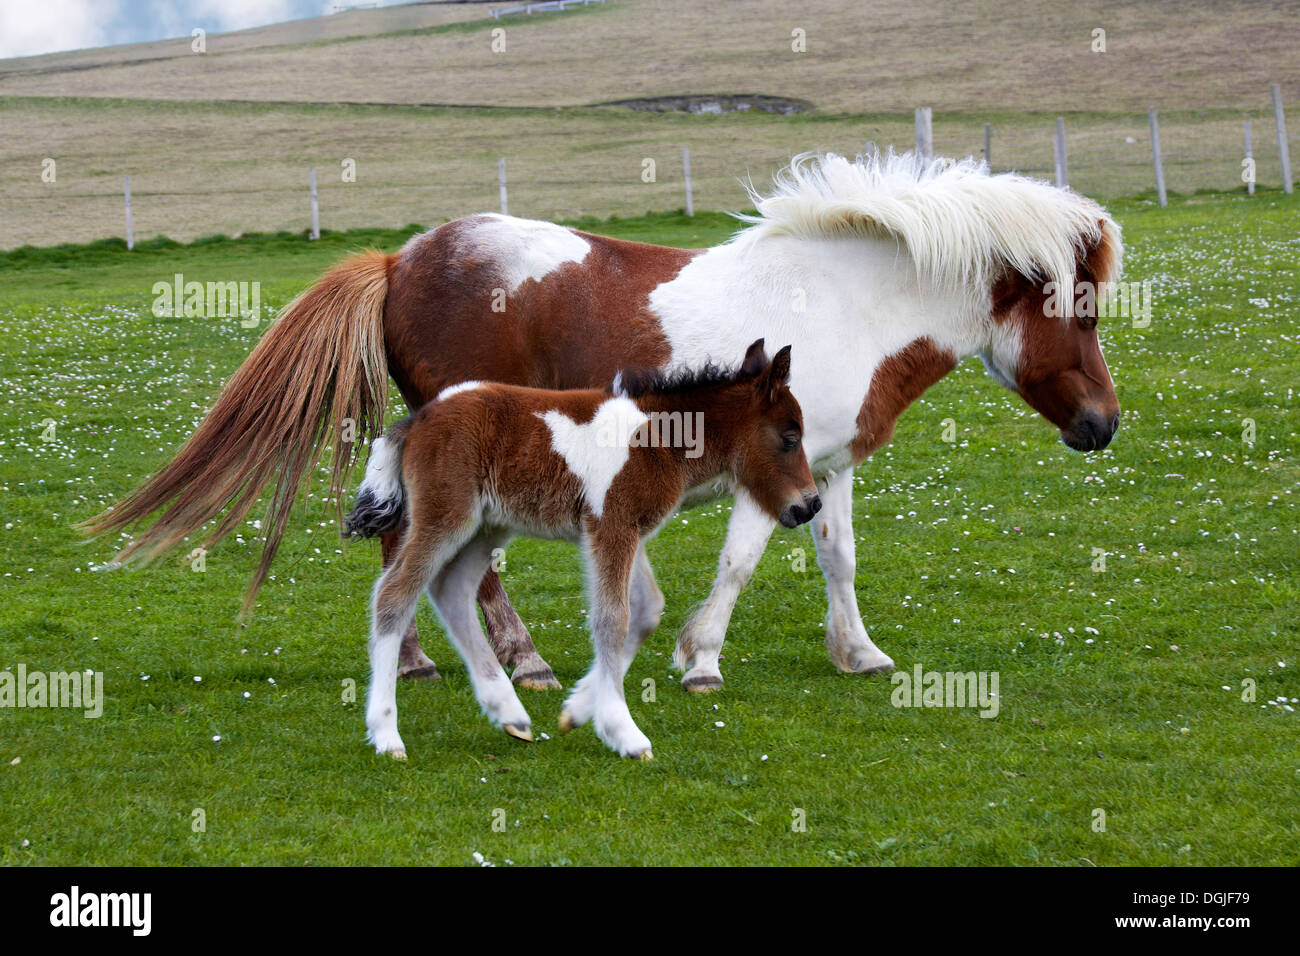 shetland pony stockfotos shetland pony bilder alamy. Black Bedroom Furniture Sets. Home Design Ideas